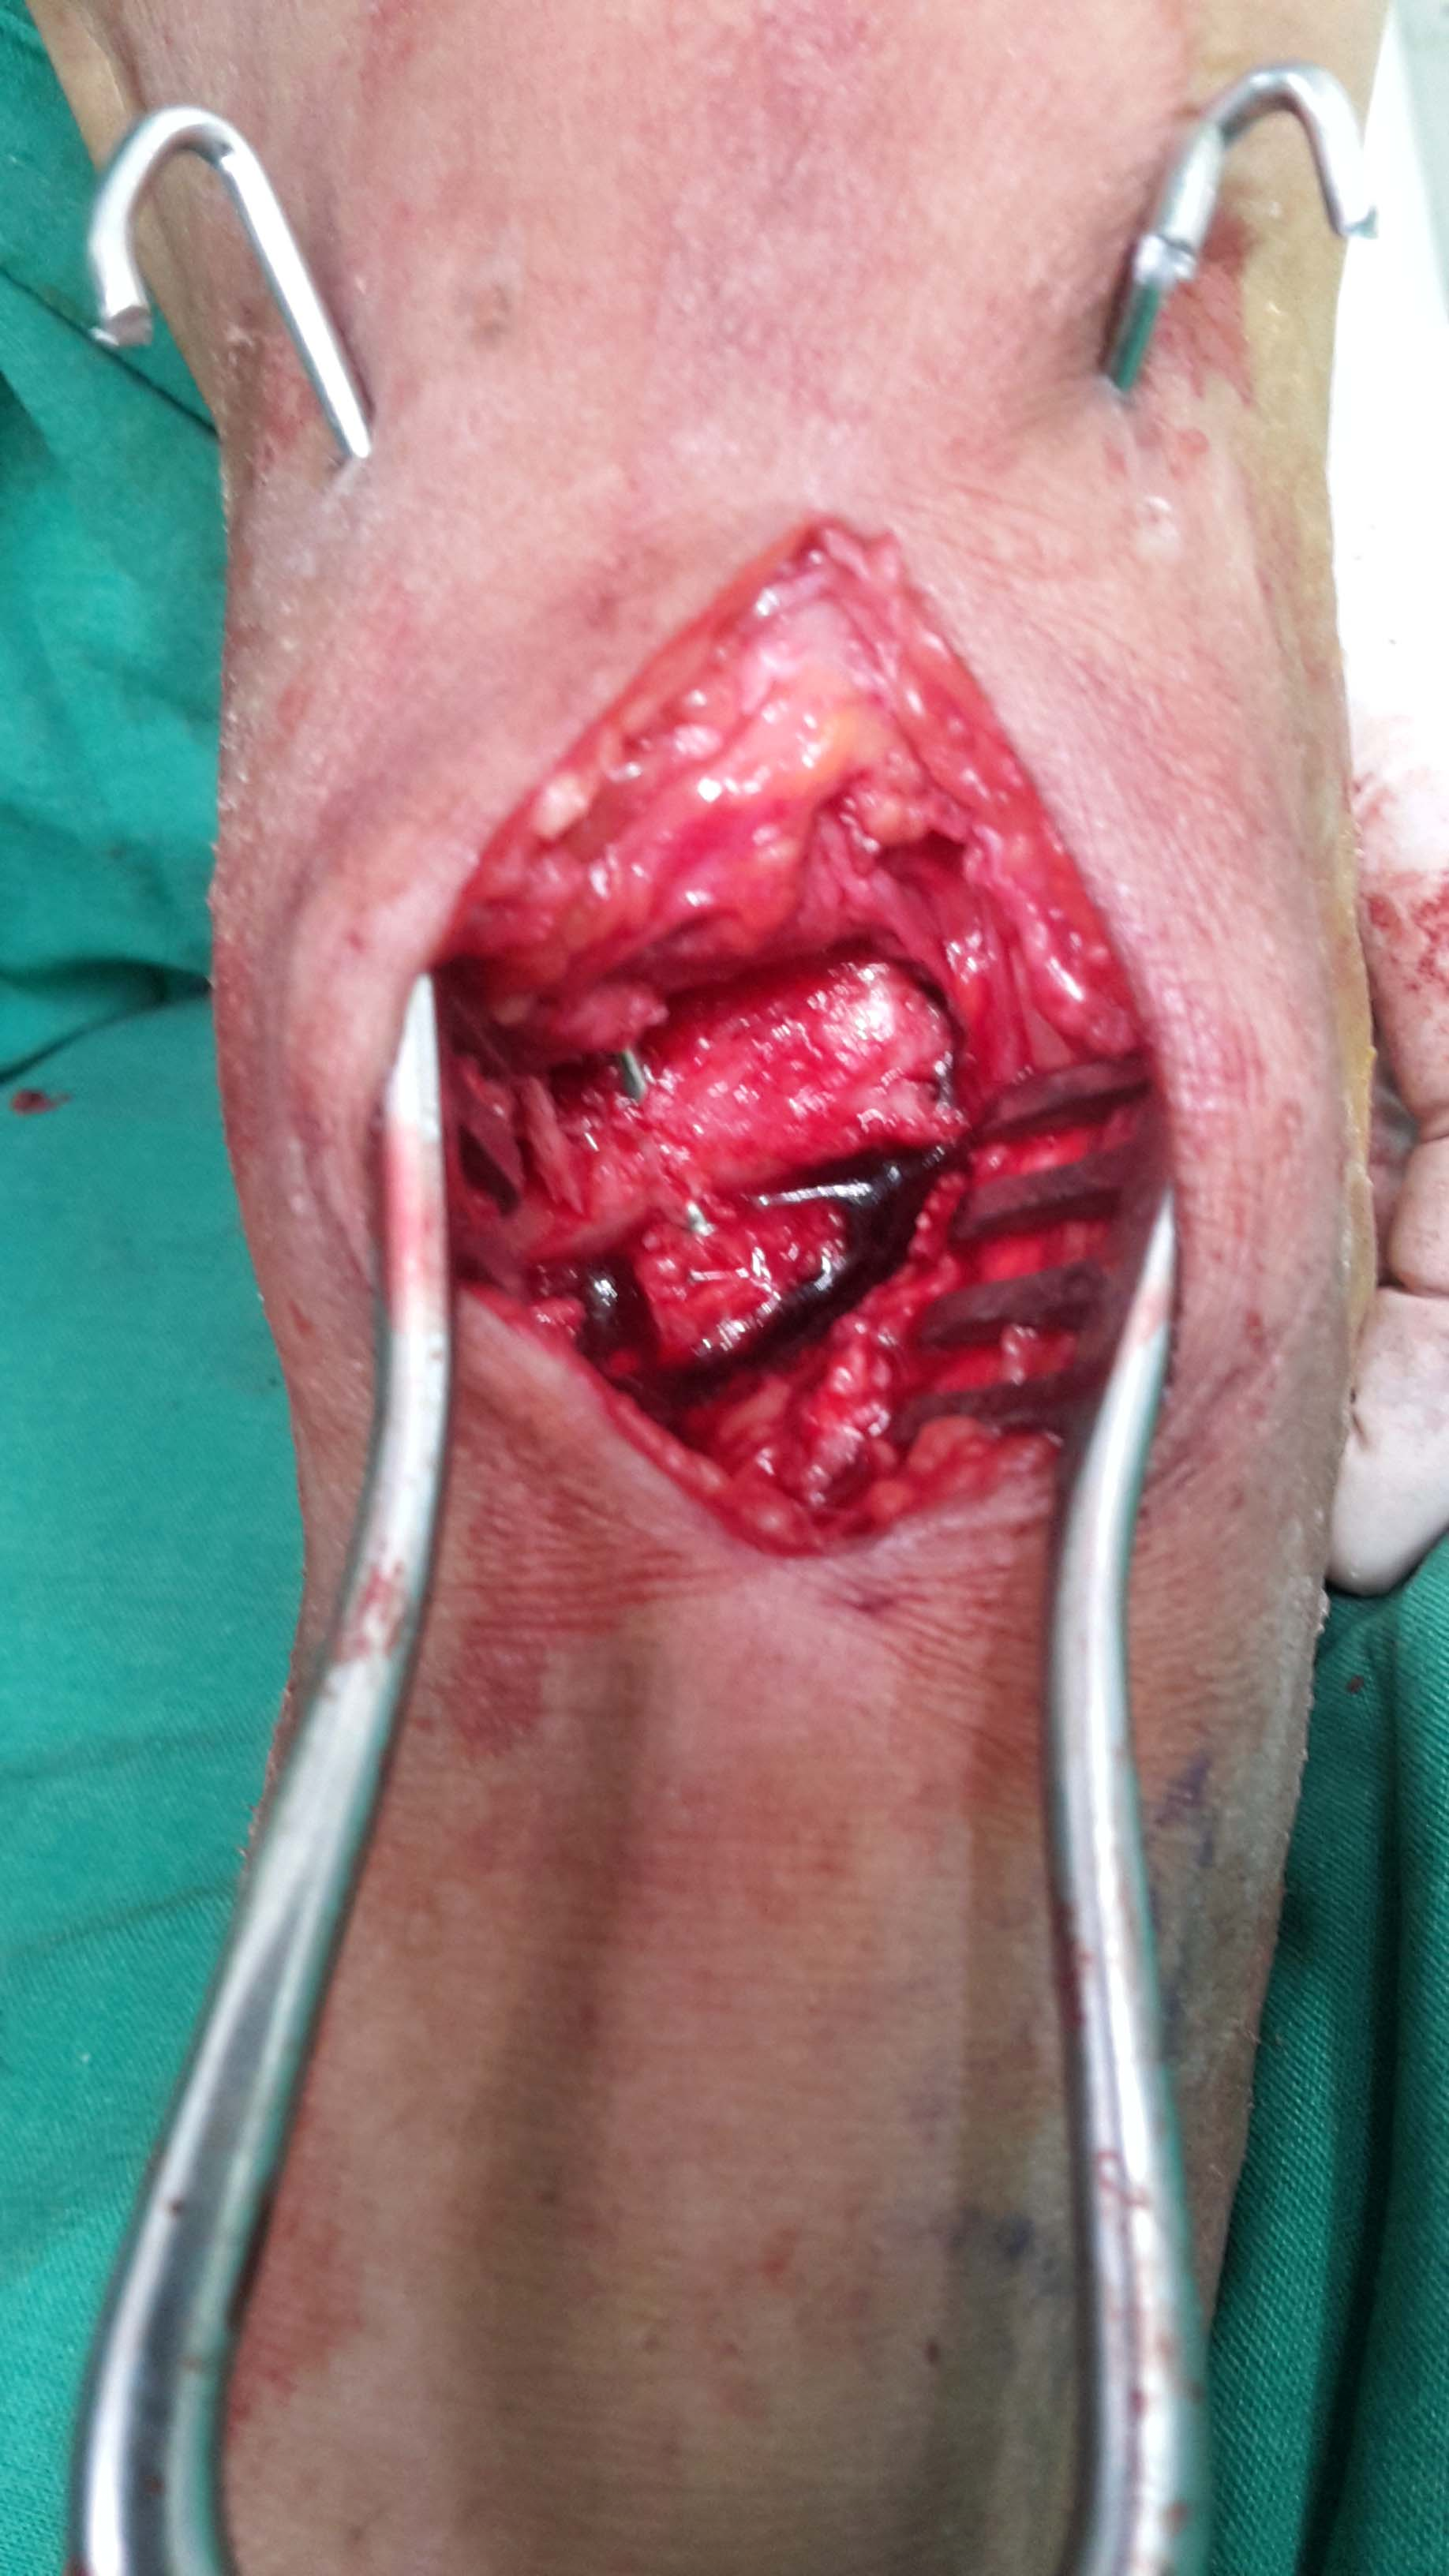 cyst excised and reconstruction done with bone graft